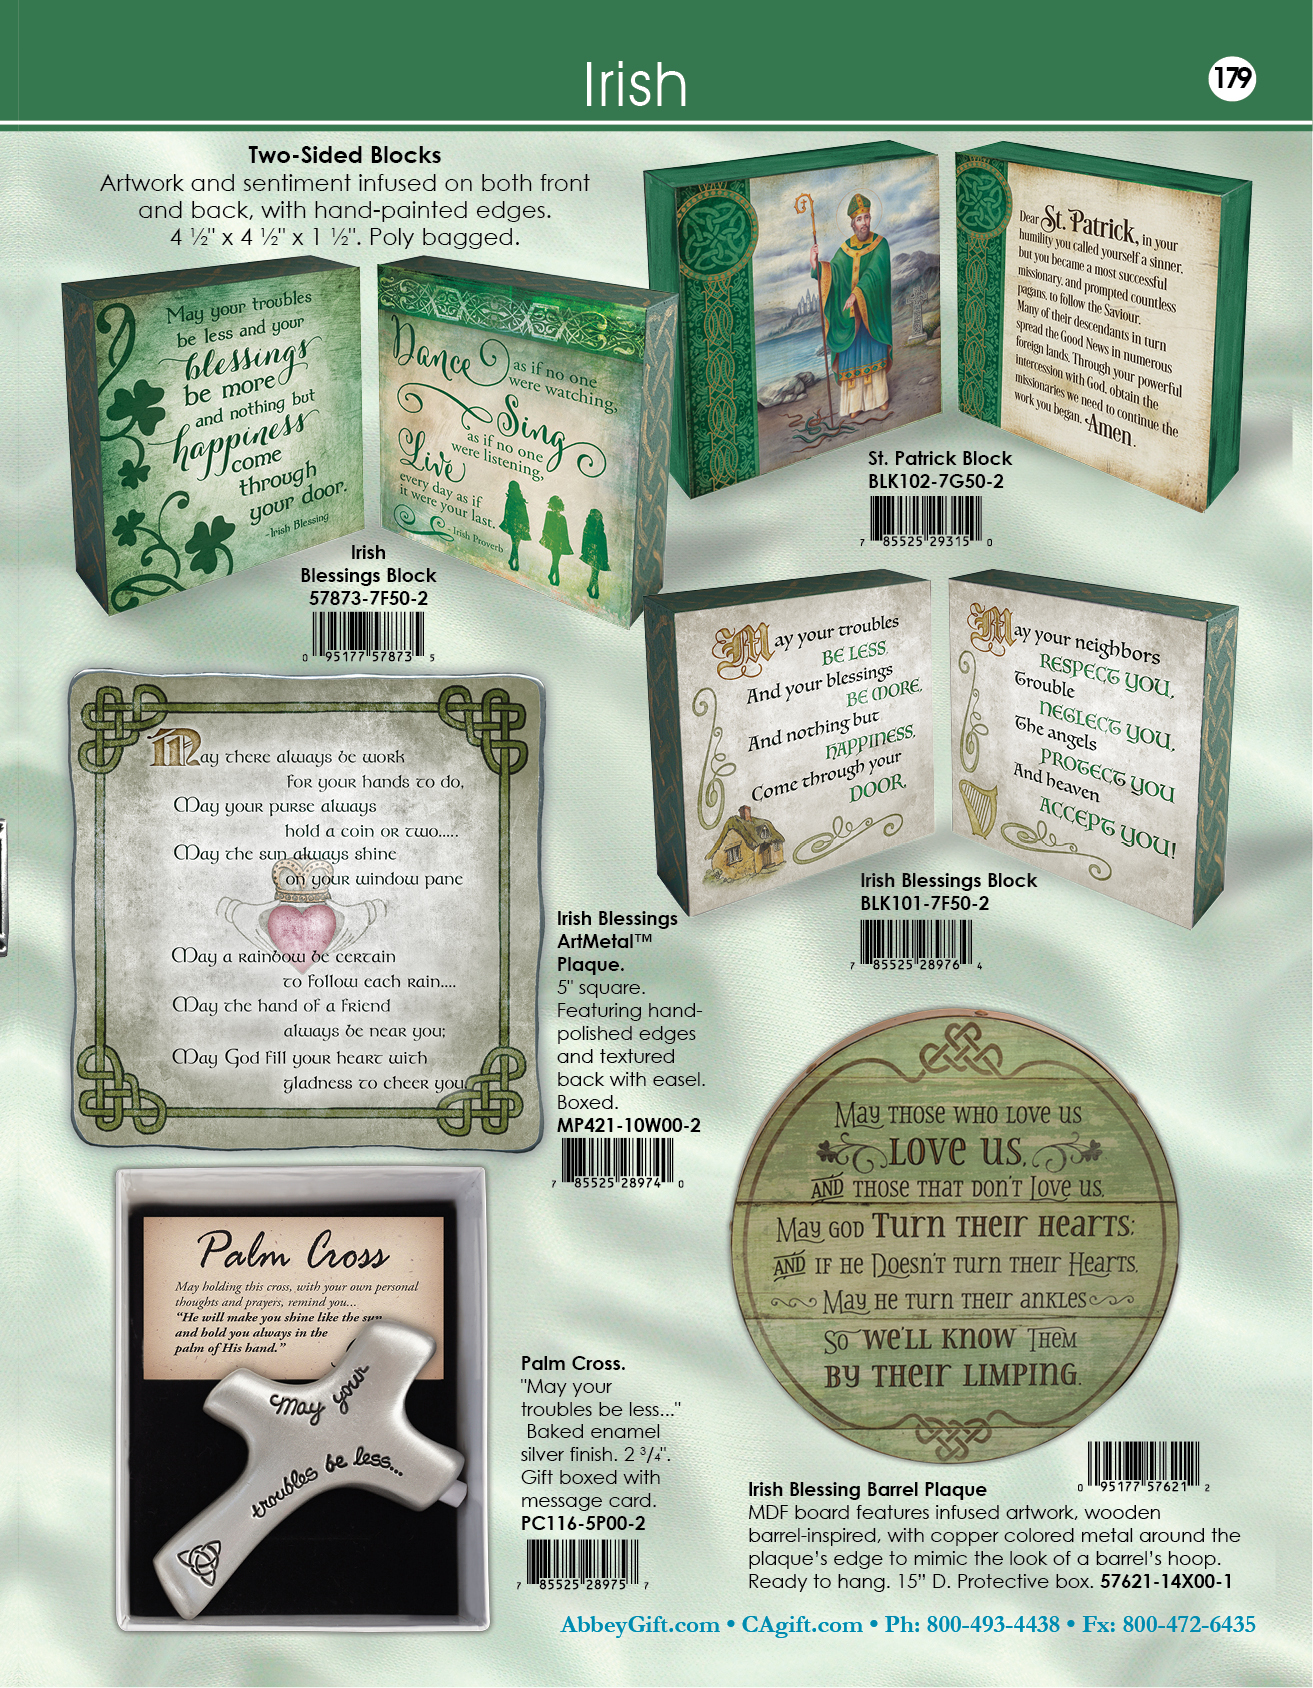 CA & Abbey Gift Pgs179